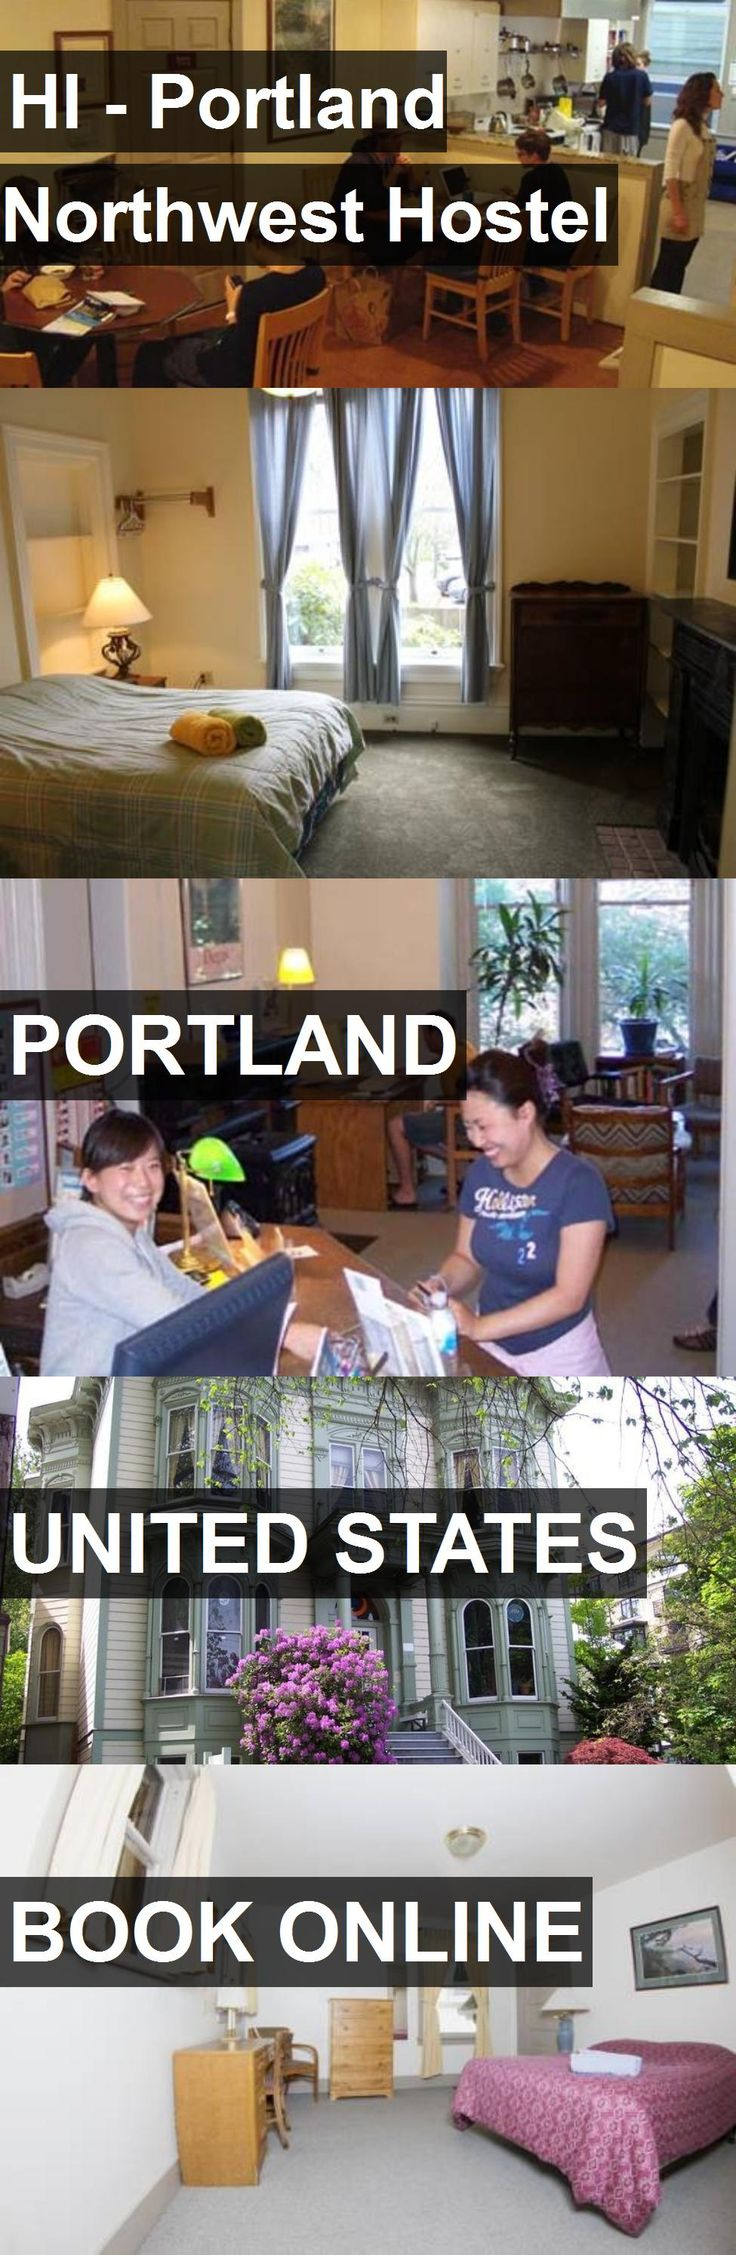 HI - Portland Northwest Hostel in Portland, United States. For more information, photos, reviews and best prices please follow the link. #UnitedStates #Portland #travel #vacation #hostel